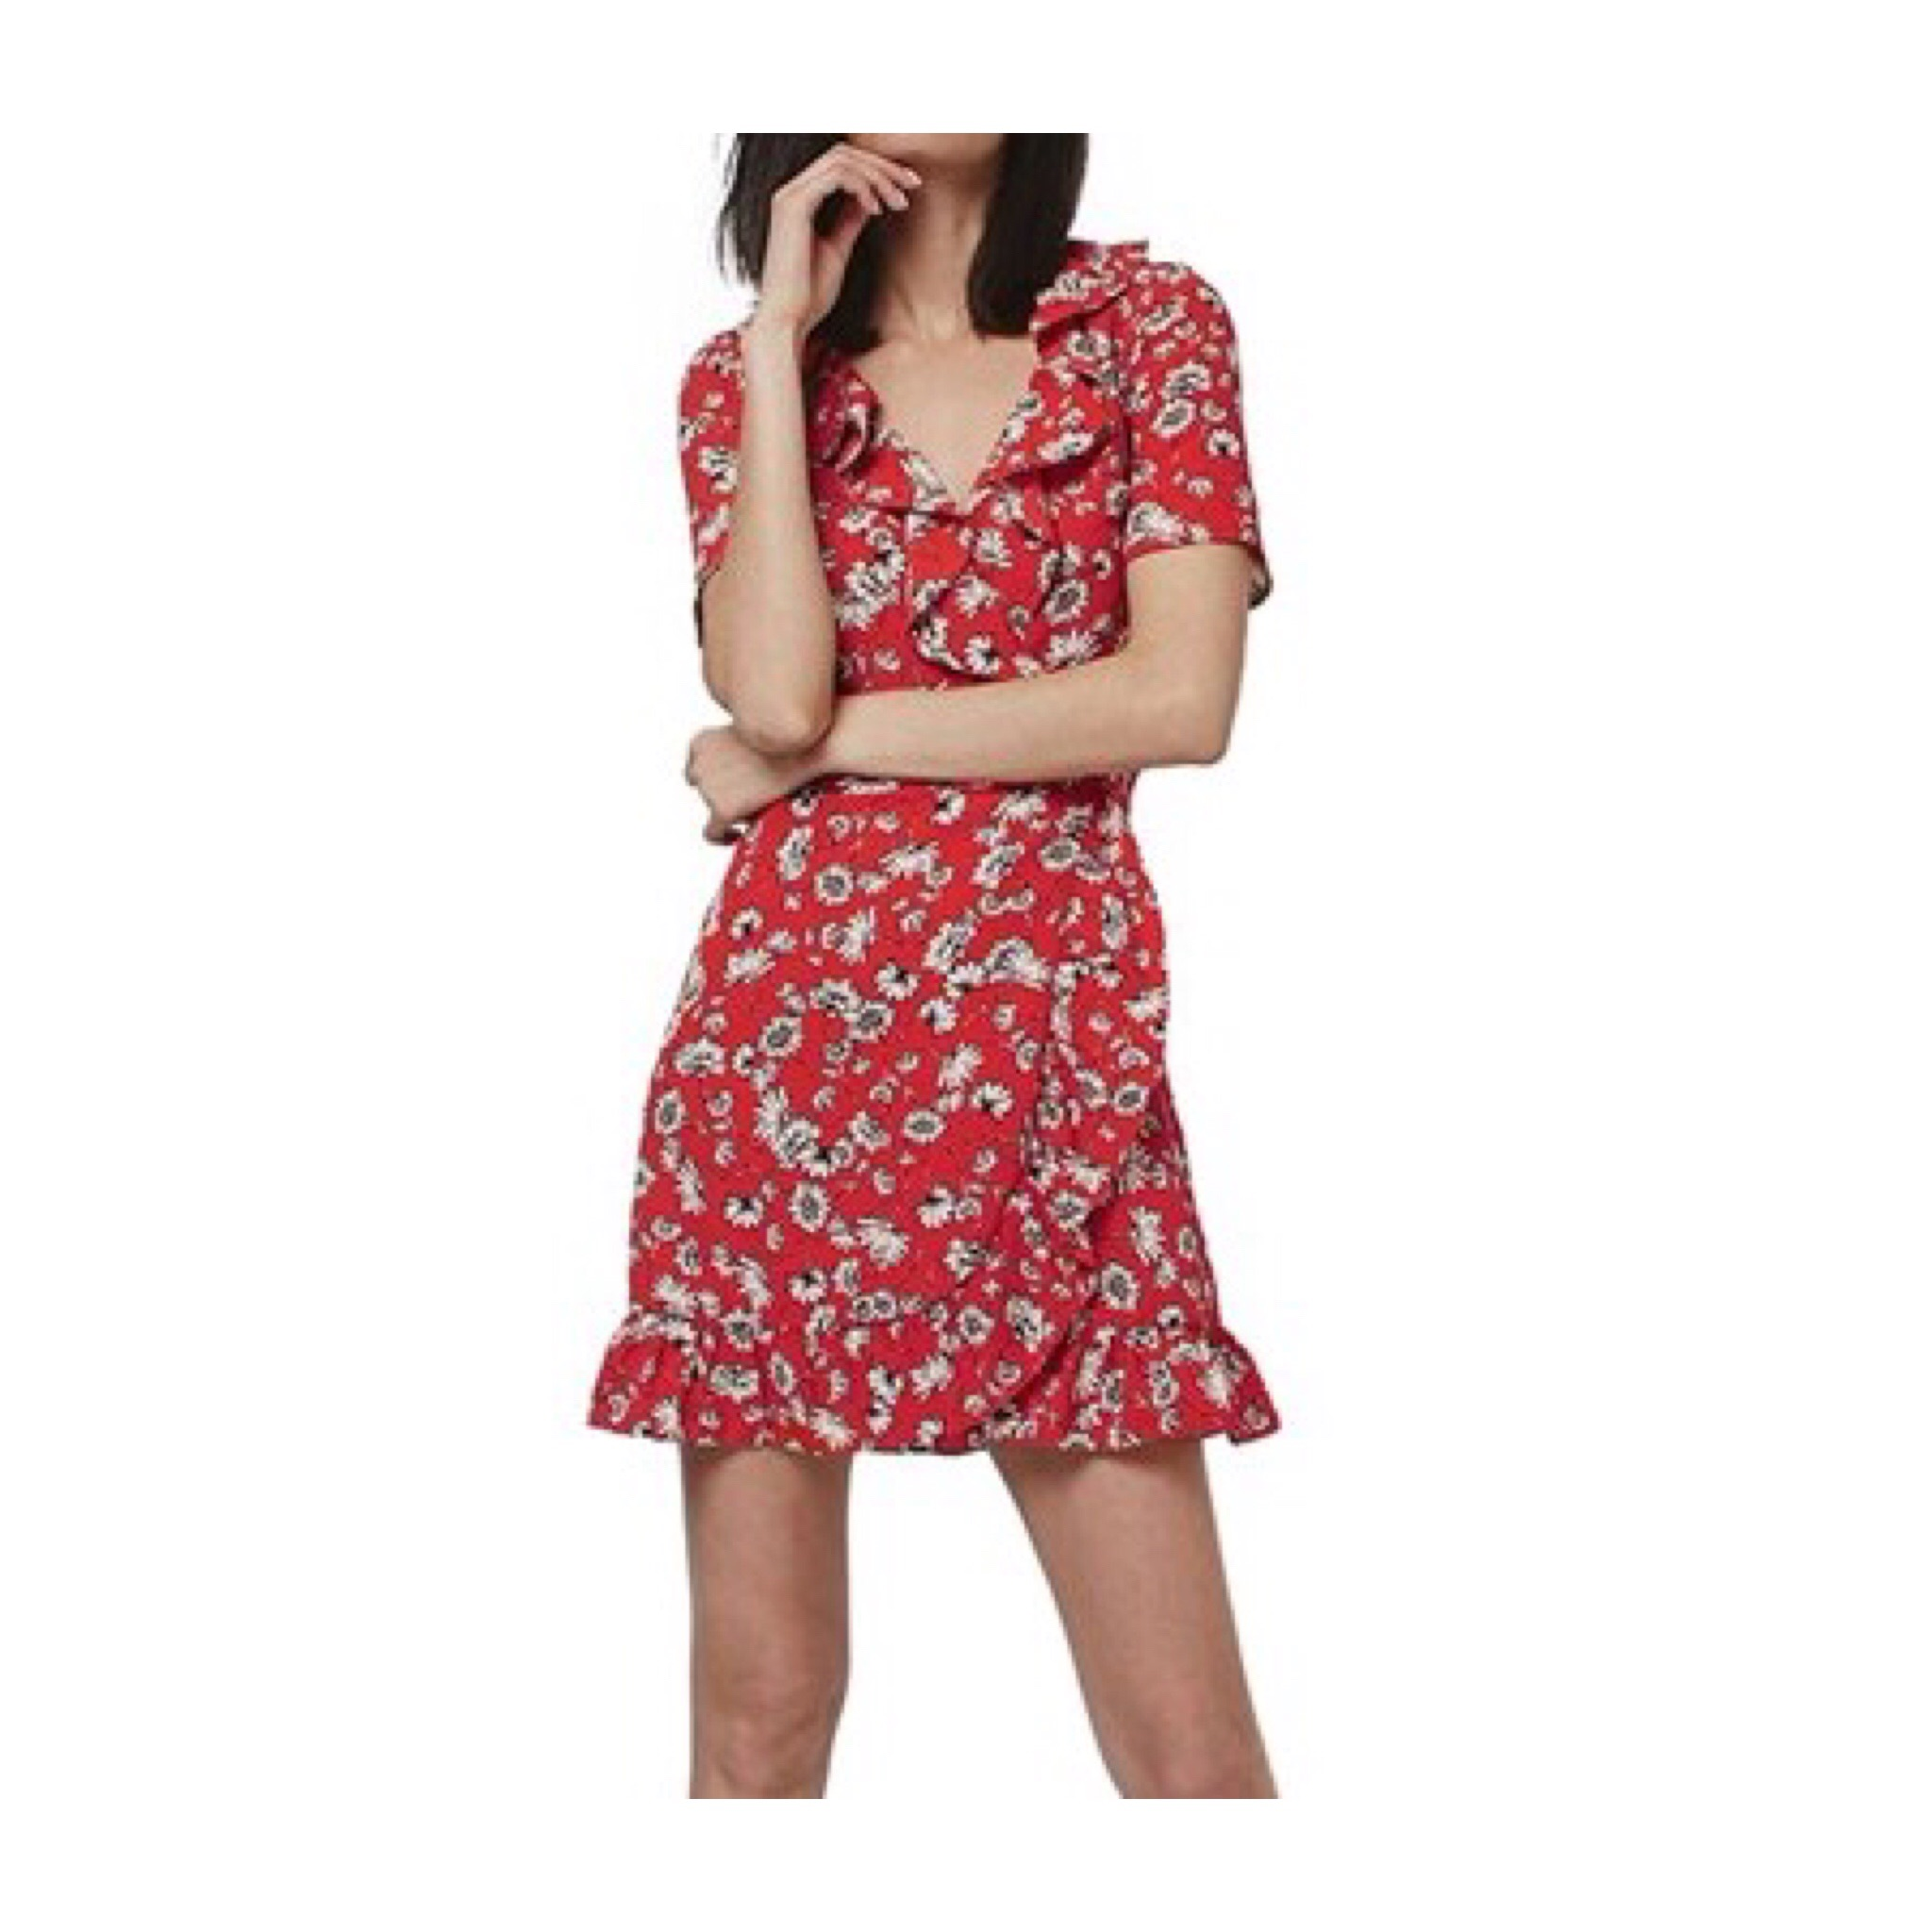 Topshop Tea Dress ... Being a bit of a tomboy I'm not usually one for a short pretty dress but I love this one from Topshop. Super flattering and can be worn with a pair of sandals for a lovely summer feminine look.